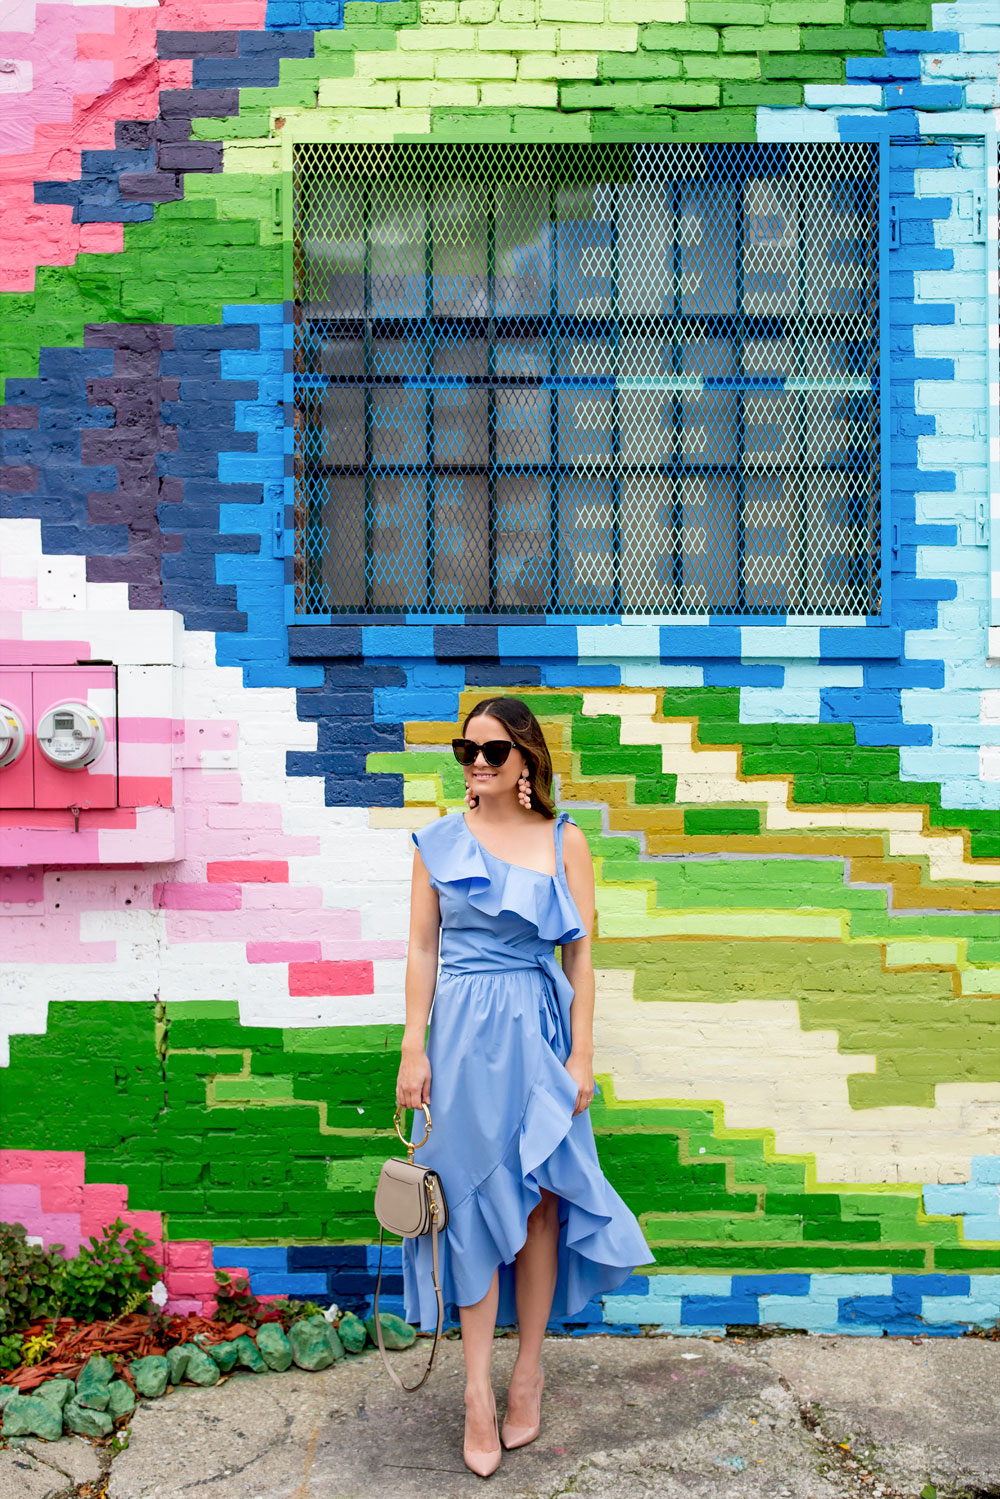 Best Colorful Murals Chicago